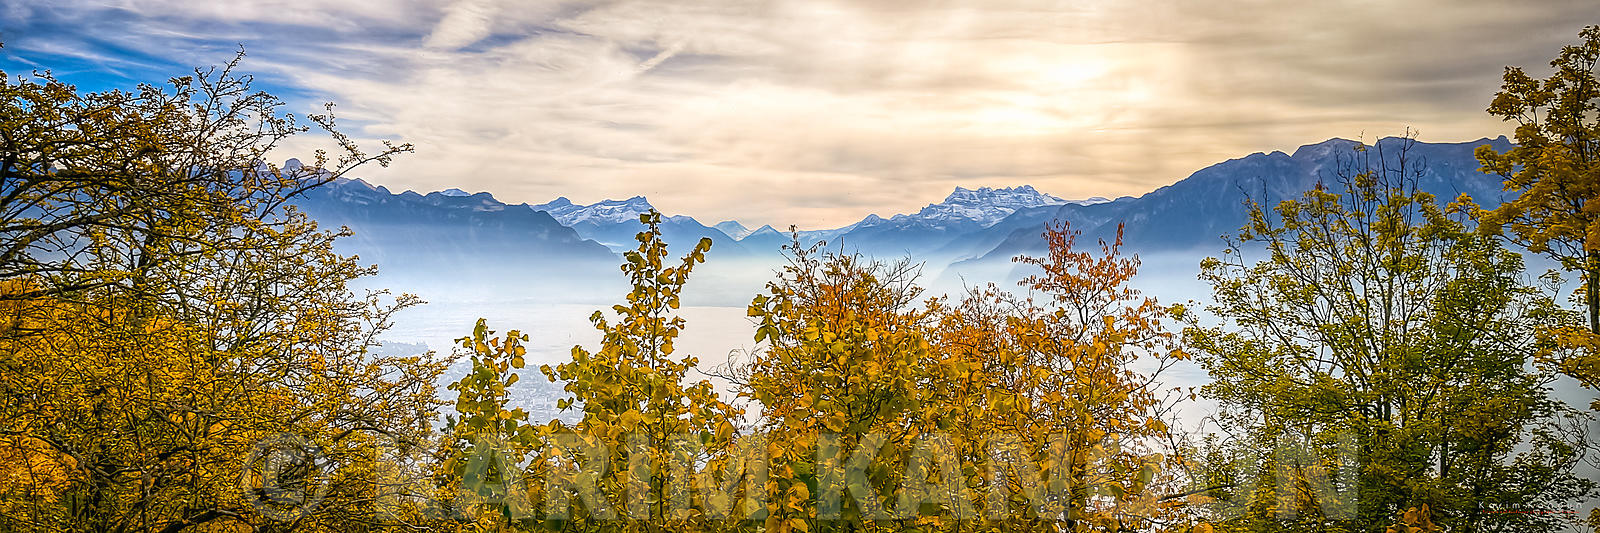 Panorama - Above the clouds - Autumn season